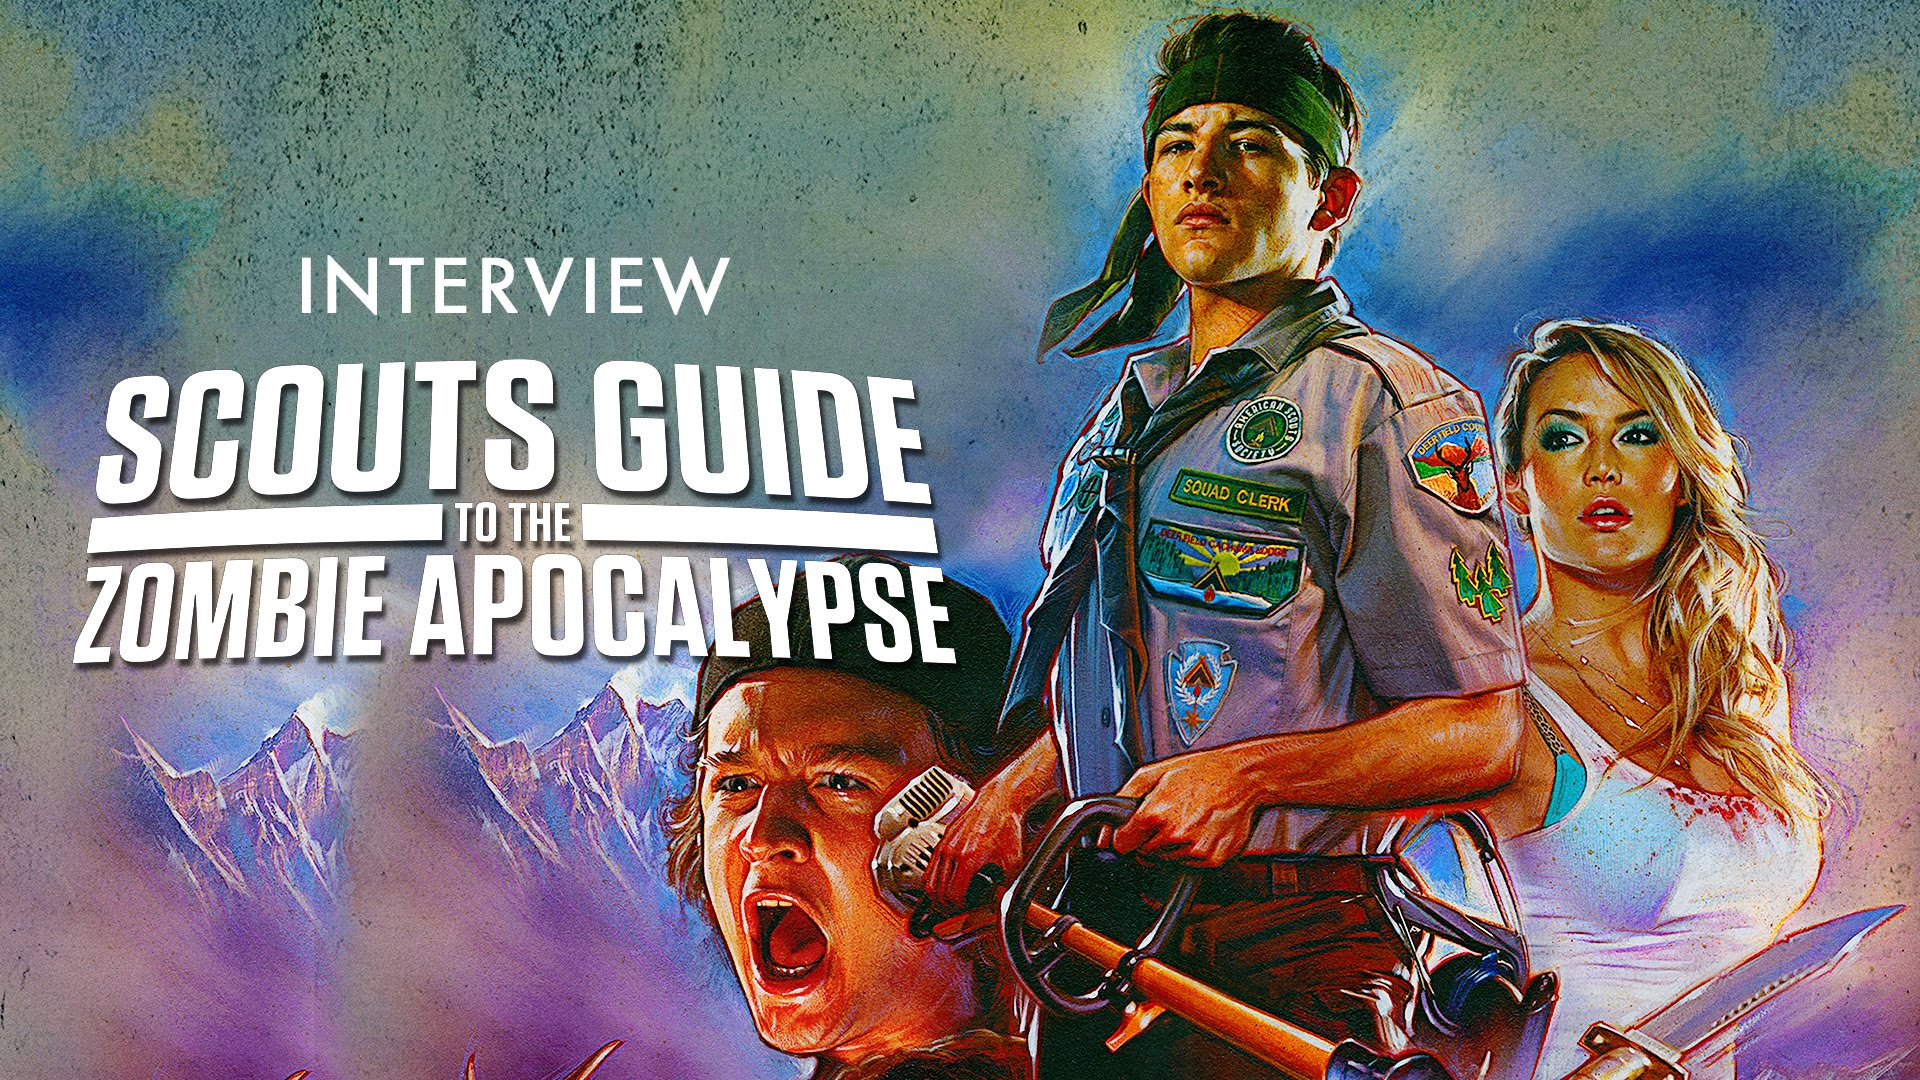 Scouts Guide To The Zombie Apocalypse Wallpapers Pictures HD Wallpapers Download Free Images Wallpaper [1000image.com]